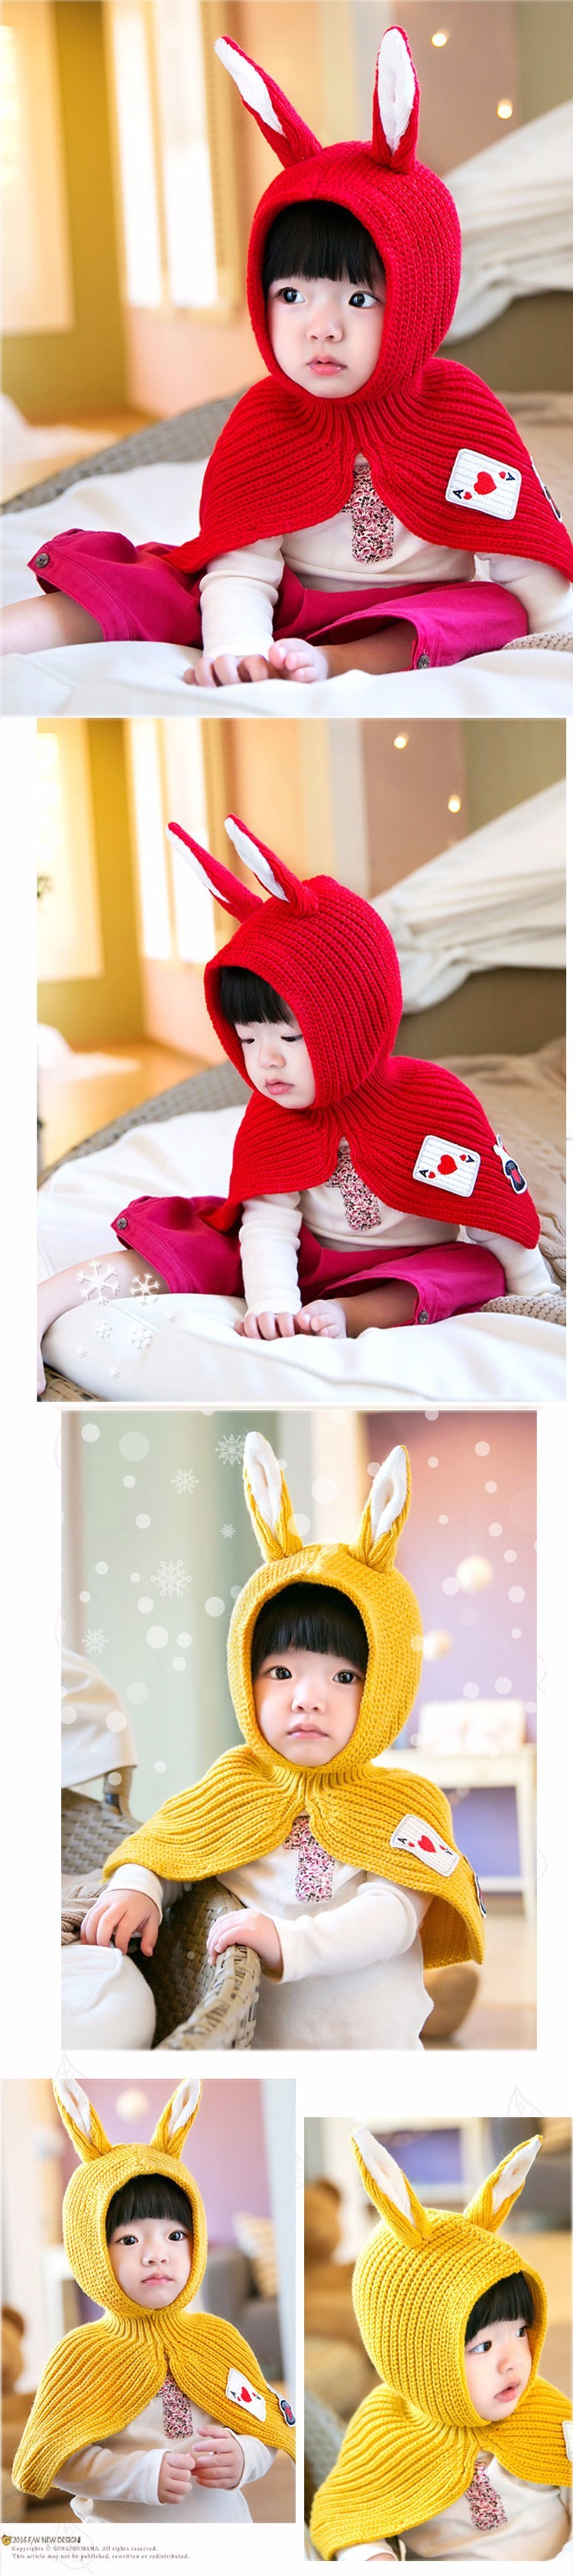 insular Brand Baby Scarf Hat Set Winter Cap Shawl for Girls Kids Animal Rabbit Ears Crochet Knitted Children Photography Props